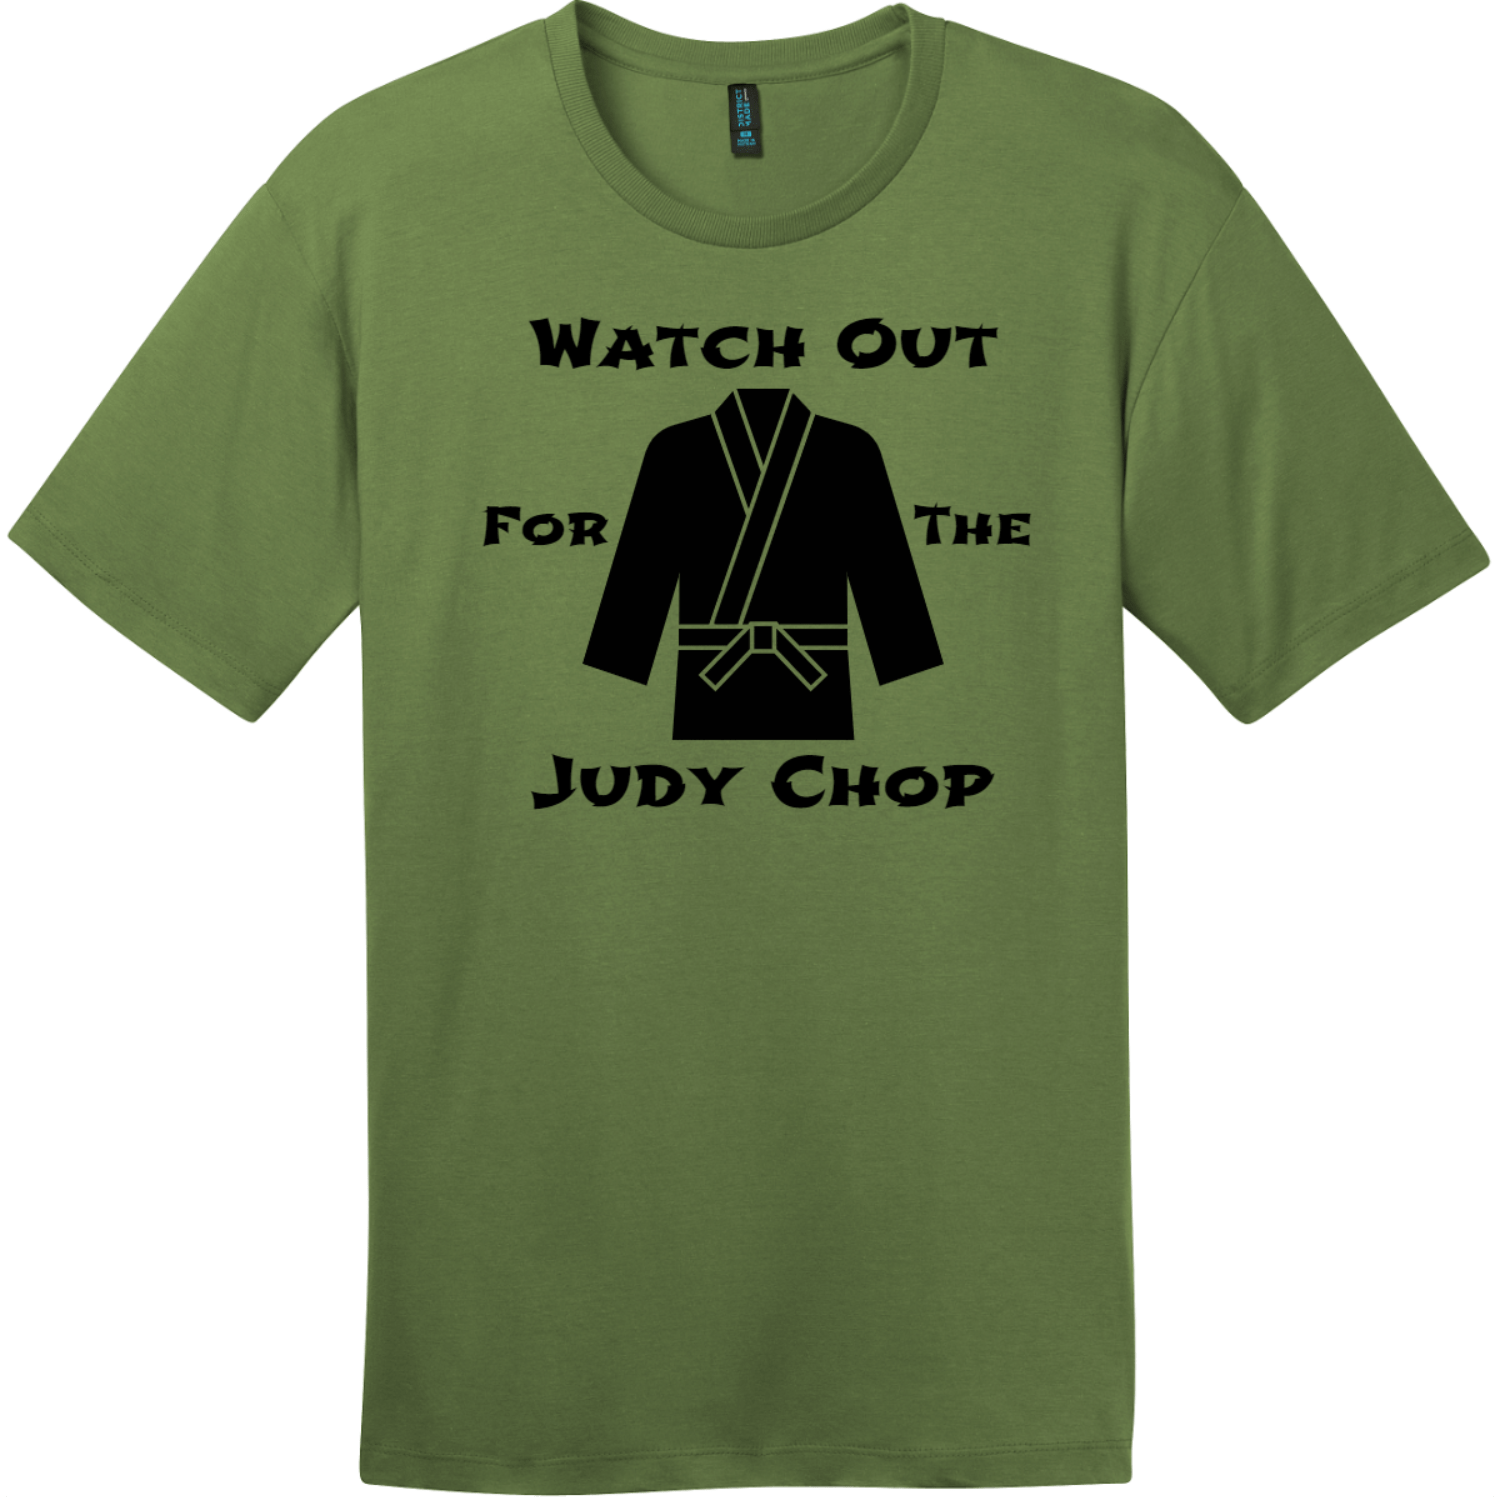 Watch Out For The Judy Chop T-Shirt Fresh Fatigue District Perfect Weight Tee DT104